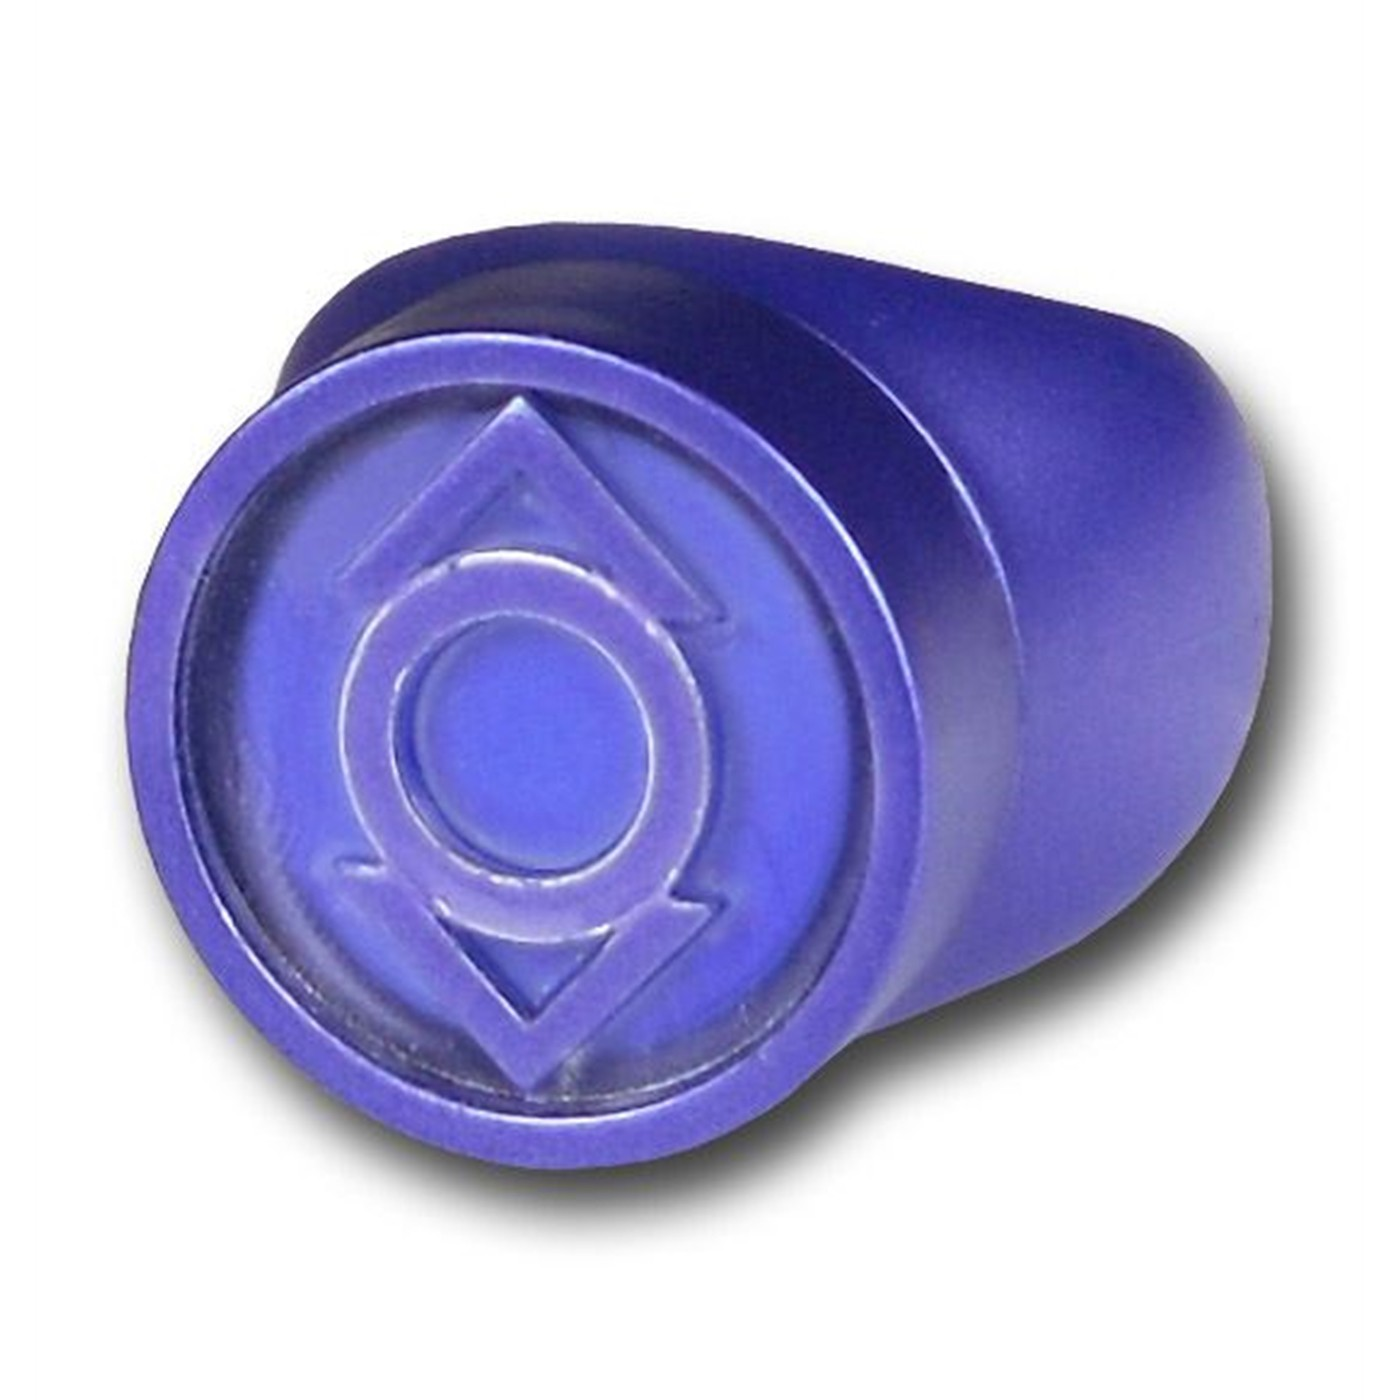 INDIGO LANTERN RING COMPASSION Green Lantern Blackest Night Plastic Ring